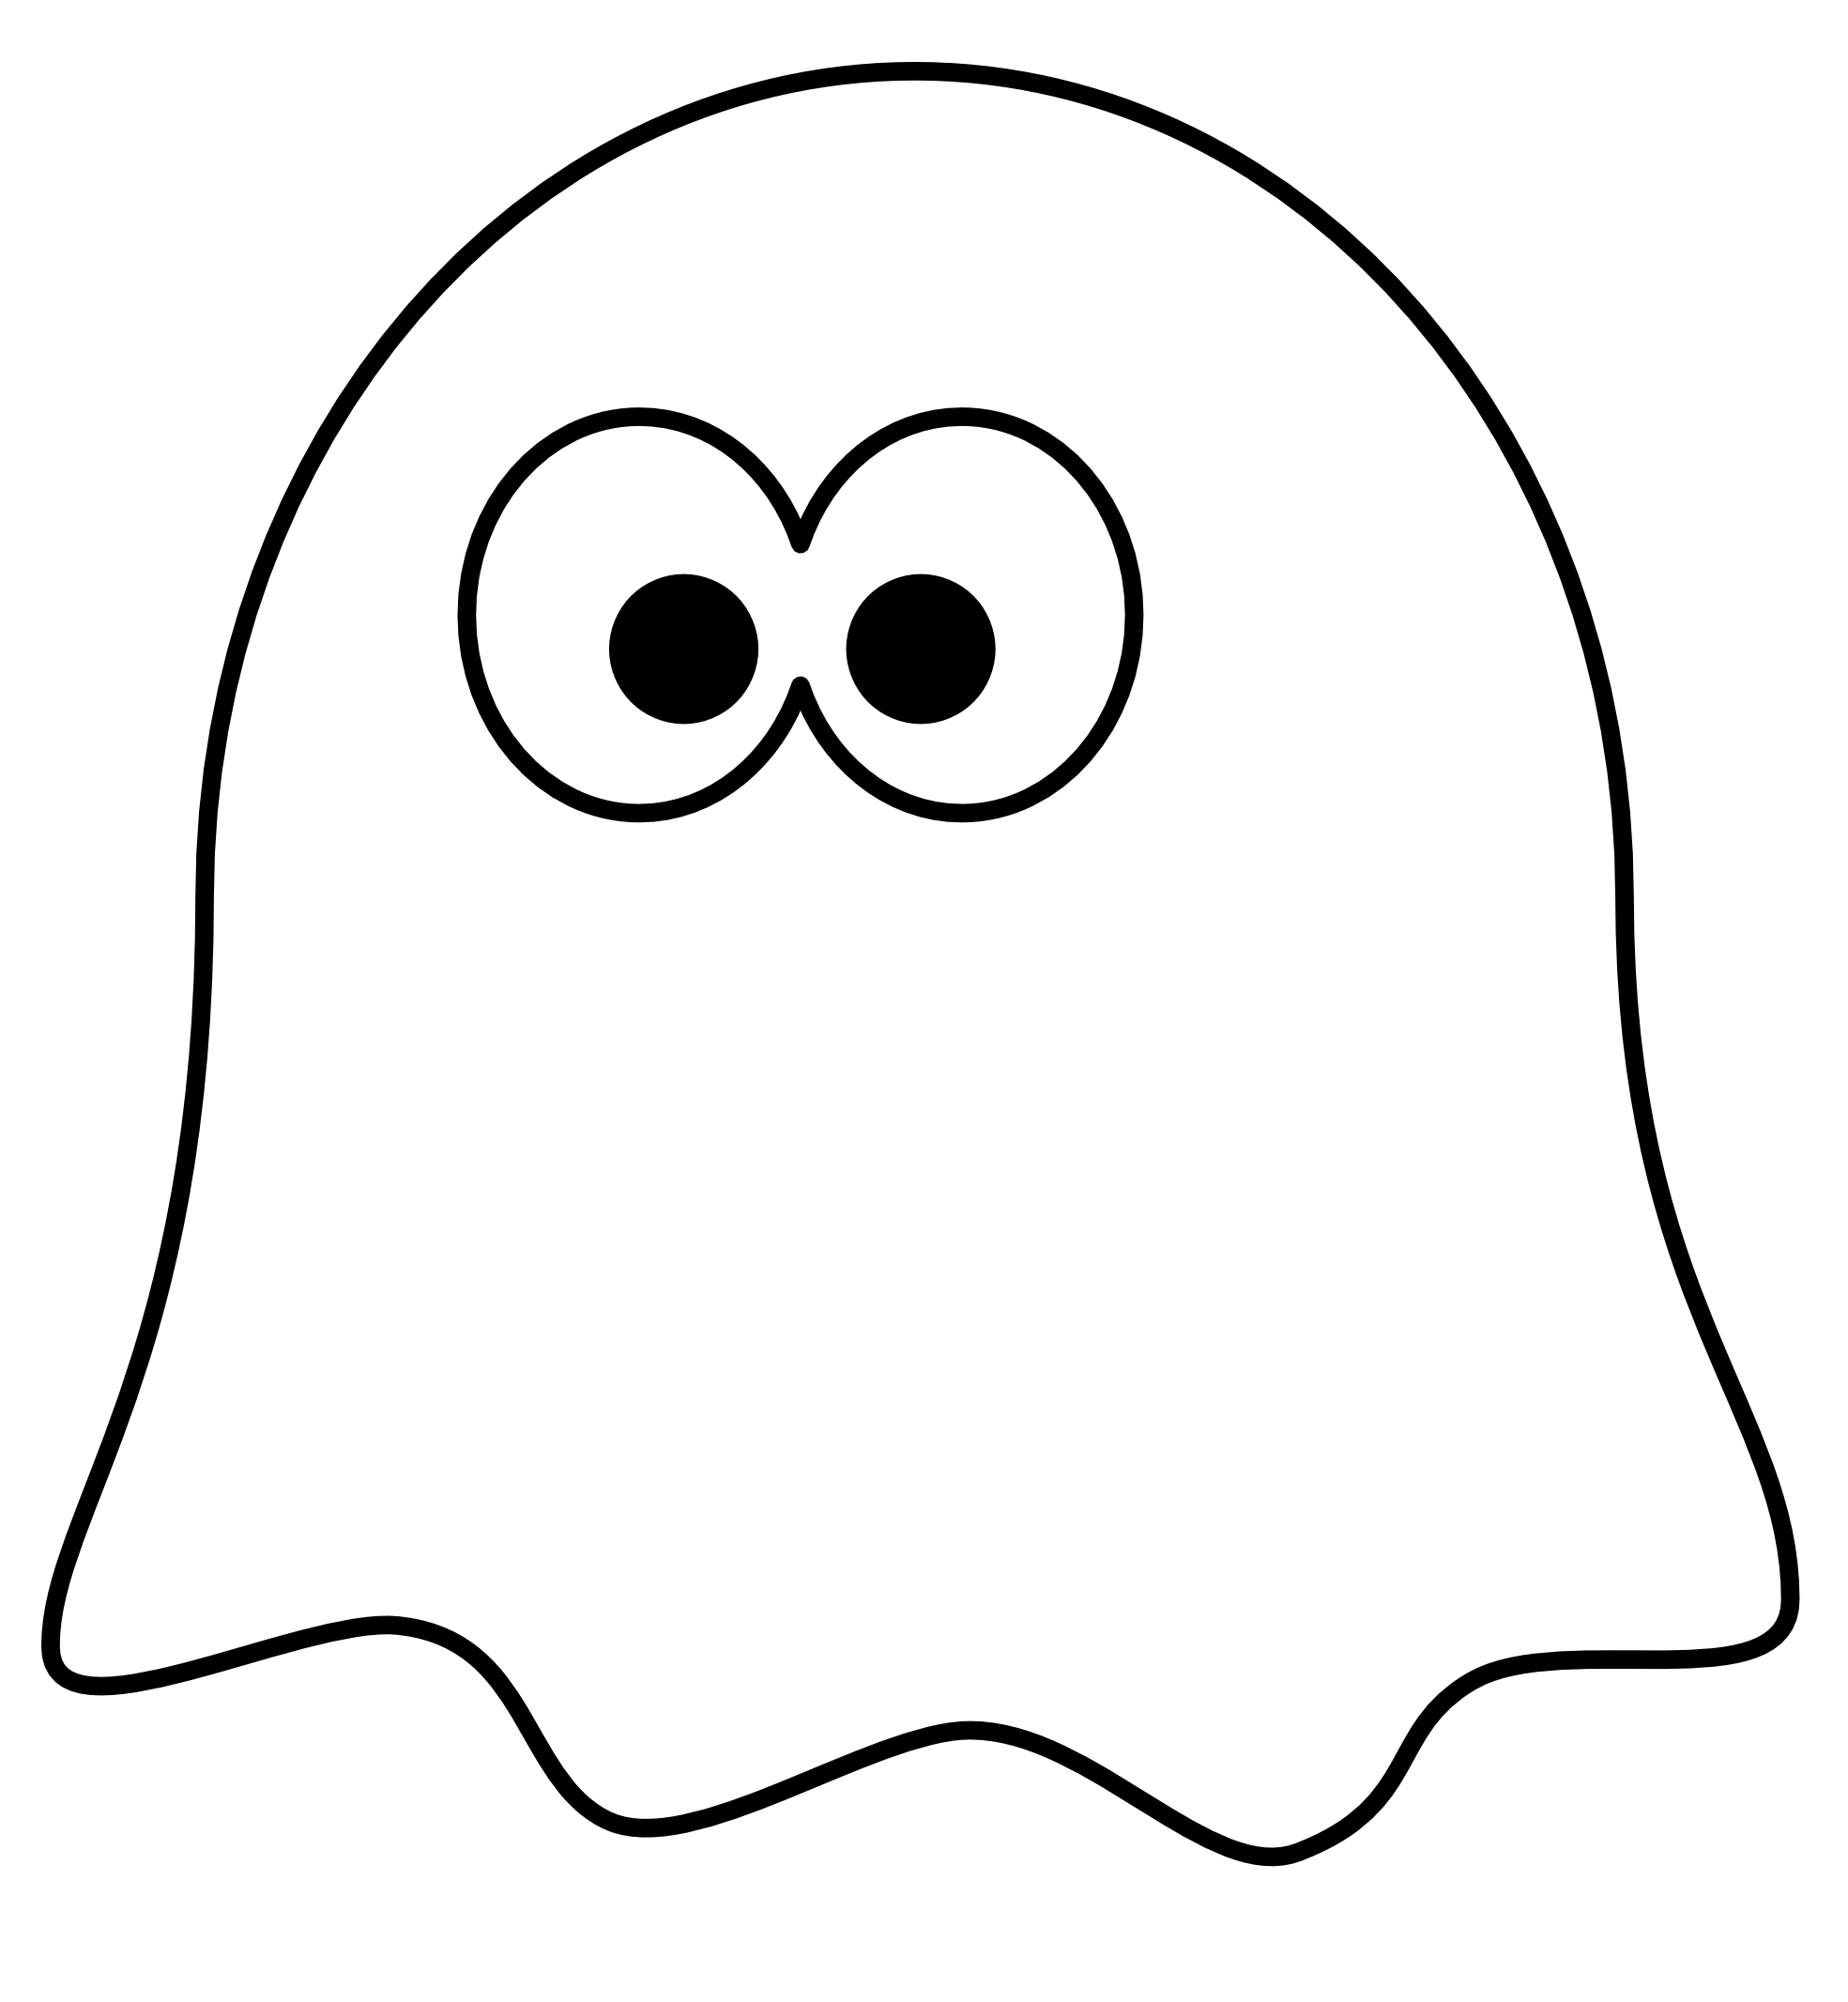 ghost-clipart-black-and-white-niExGbXiA.png